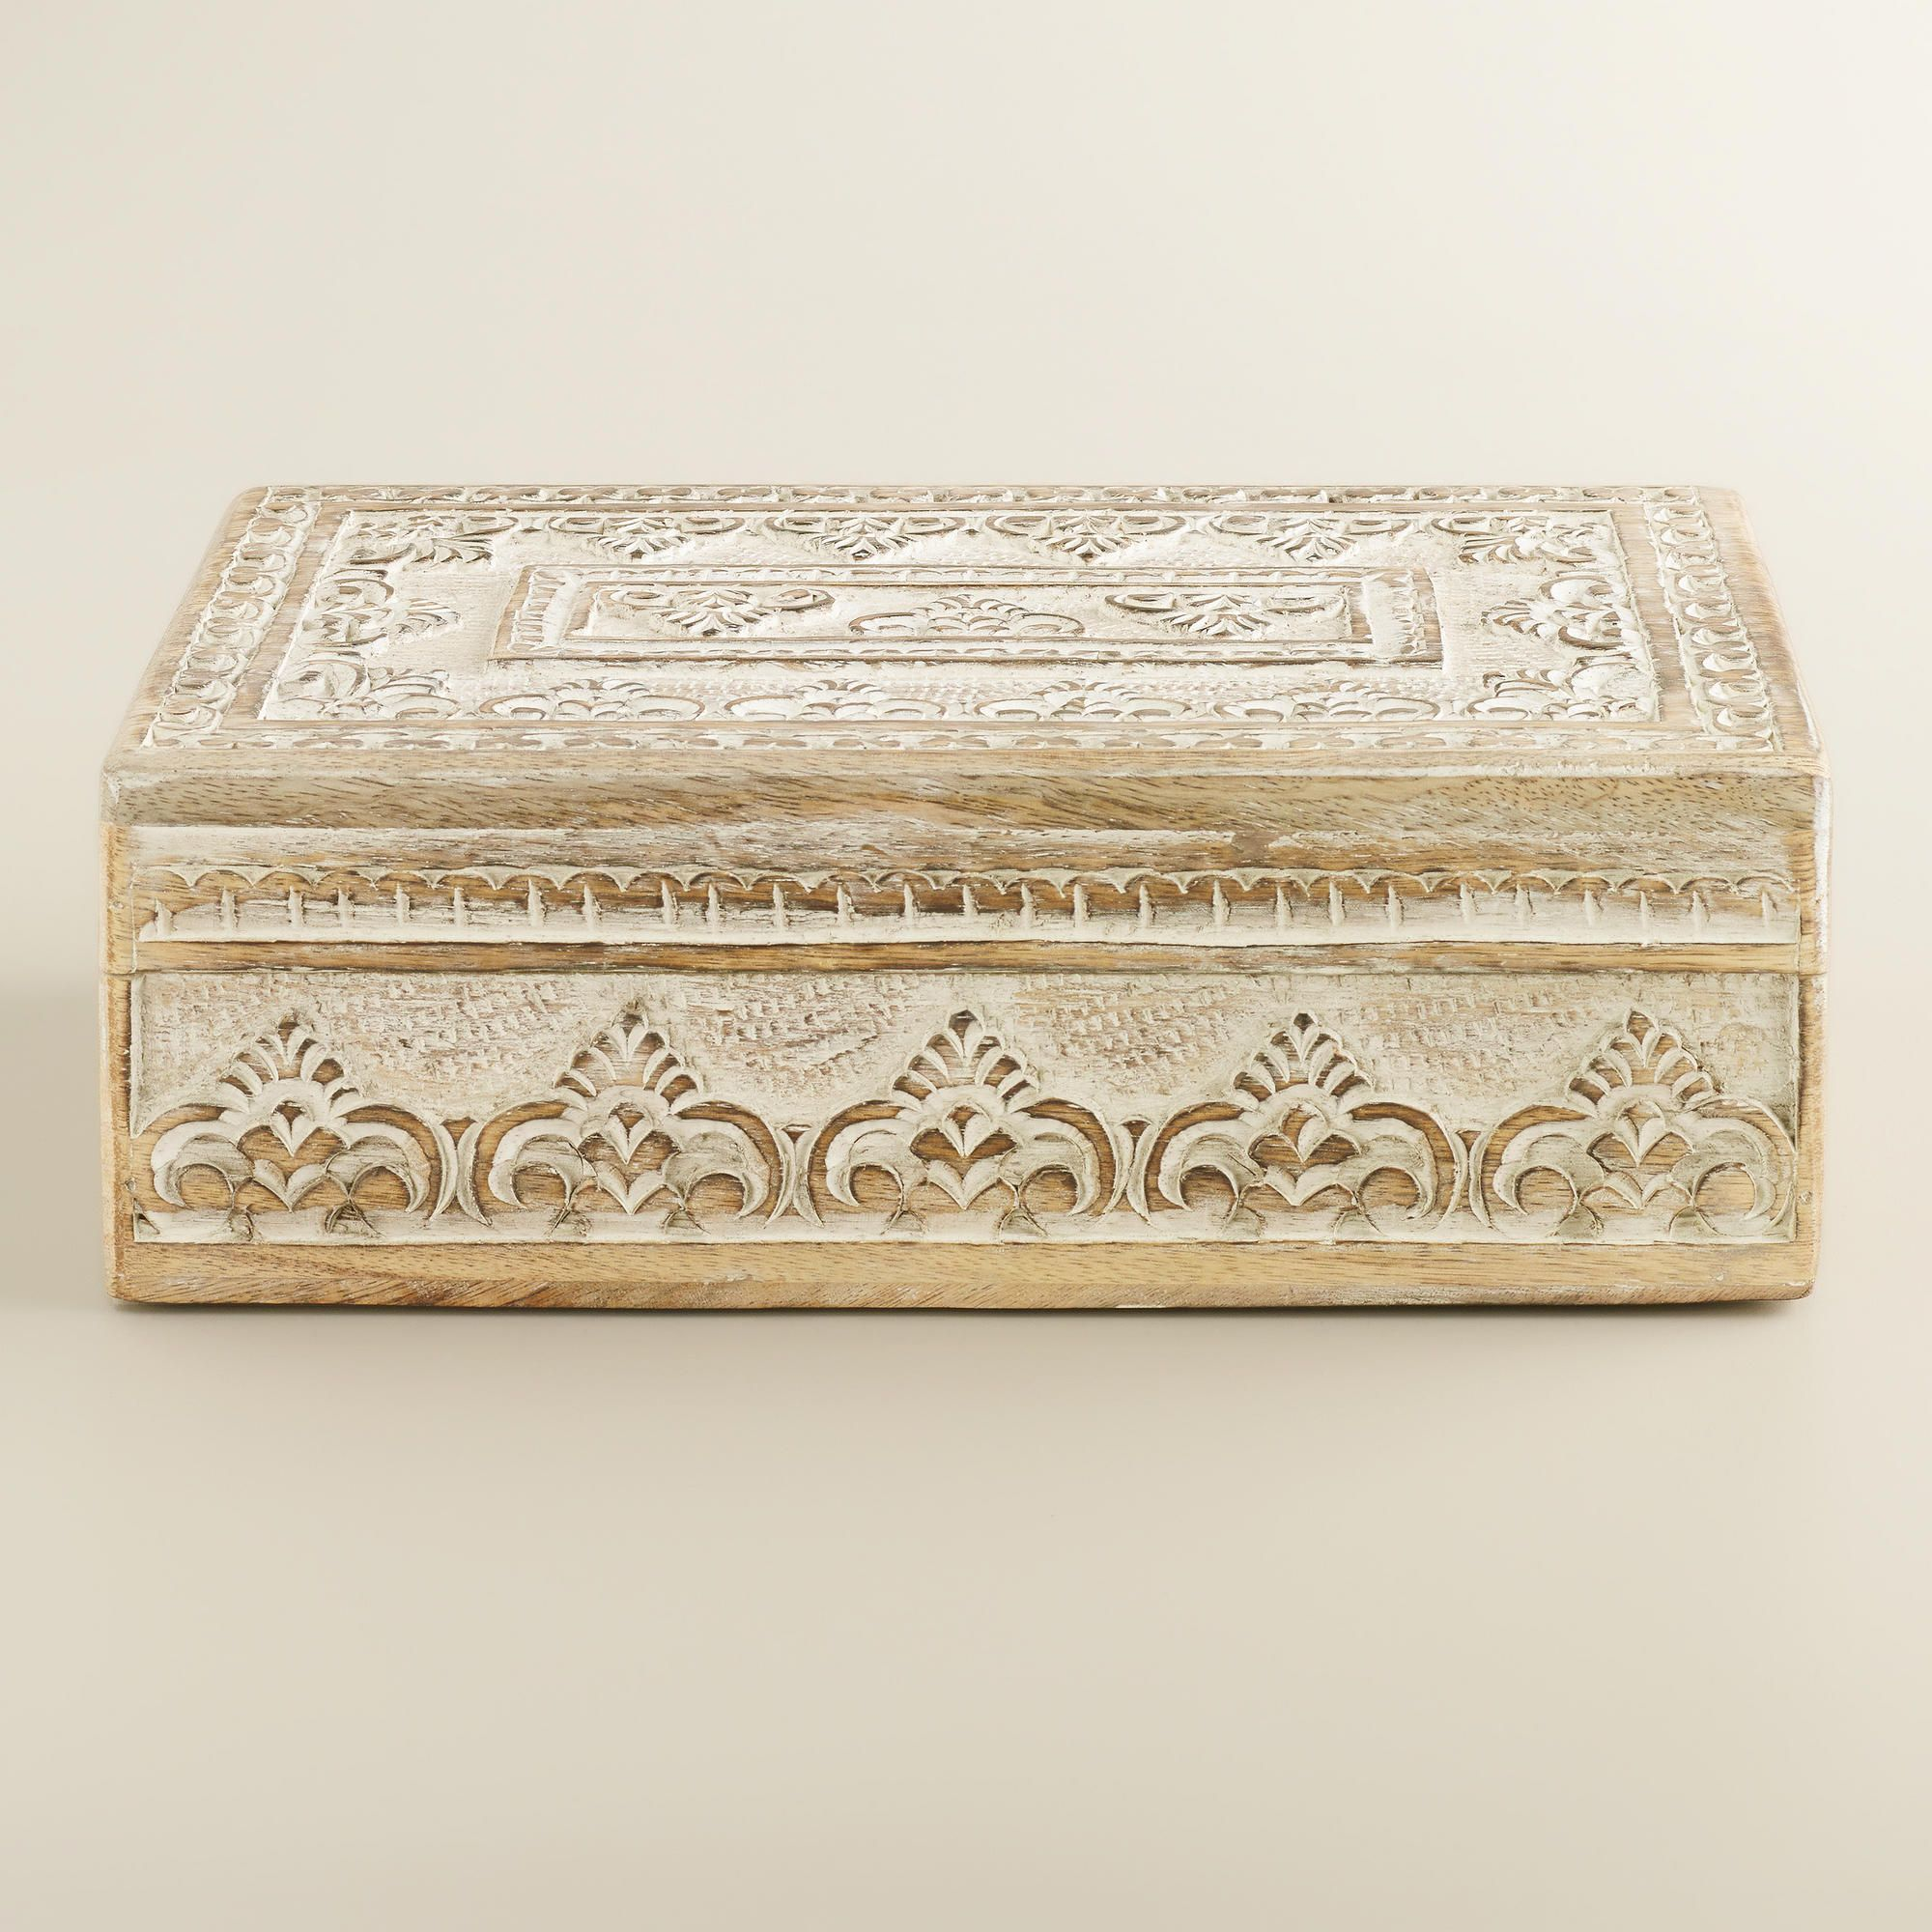 World Market Jewelry Box Adorable Whitewash Carved Brooklyn Jewelry Box  World Market  Boudoir Decorating Inspiration